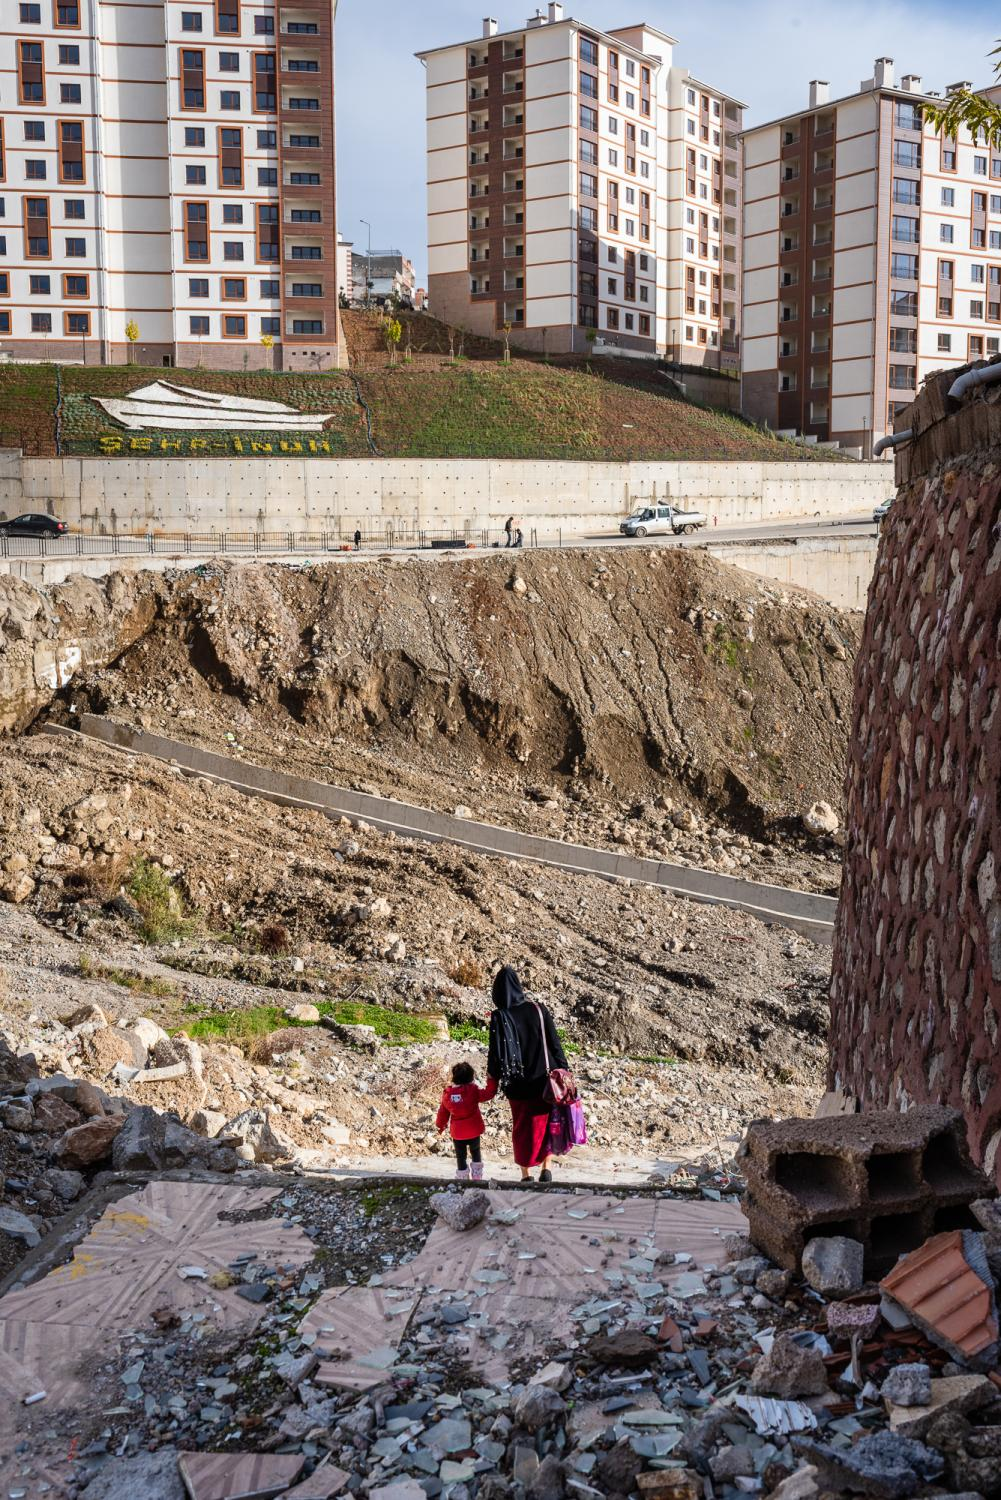 ŞIRNAK, TURKEY – NOVEMBER 20, 2018: A mother and her child walking pass a residential area which was a battleground between Turkish government forces and PKK rebels from 2015 - 2016. The clashes destroyed residential buildings completely. Rubble and bullet holes are still visible until today. In the background are new apartment buildings built by the Turkish government for affected families.